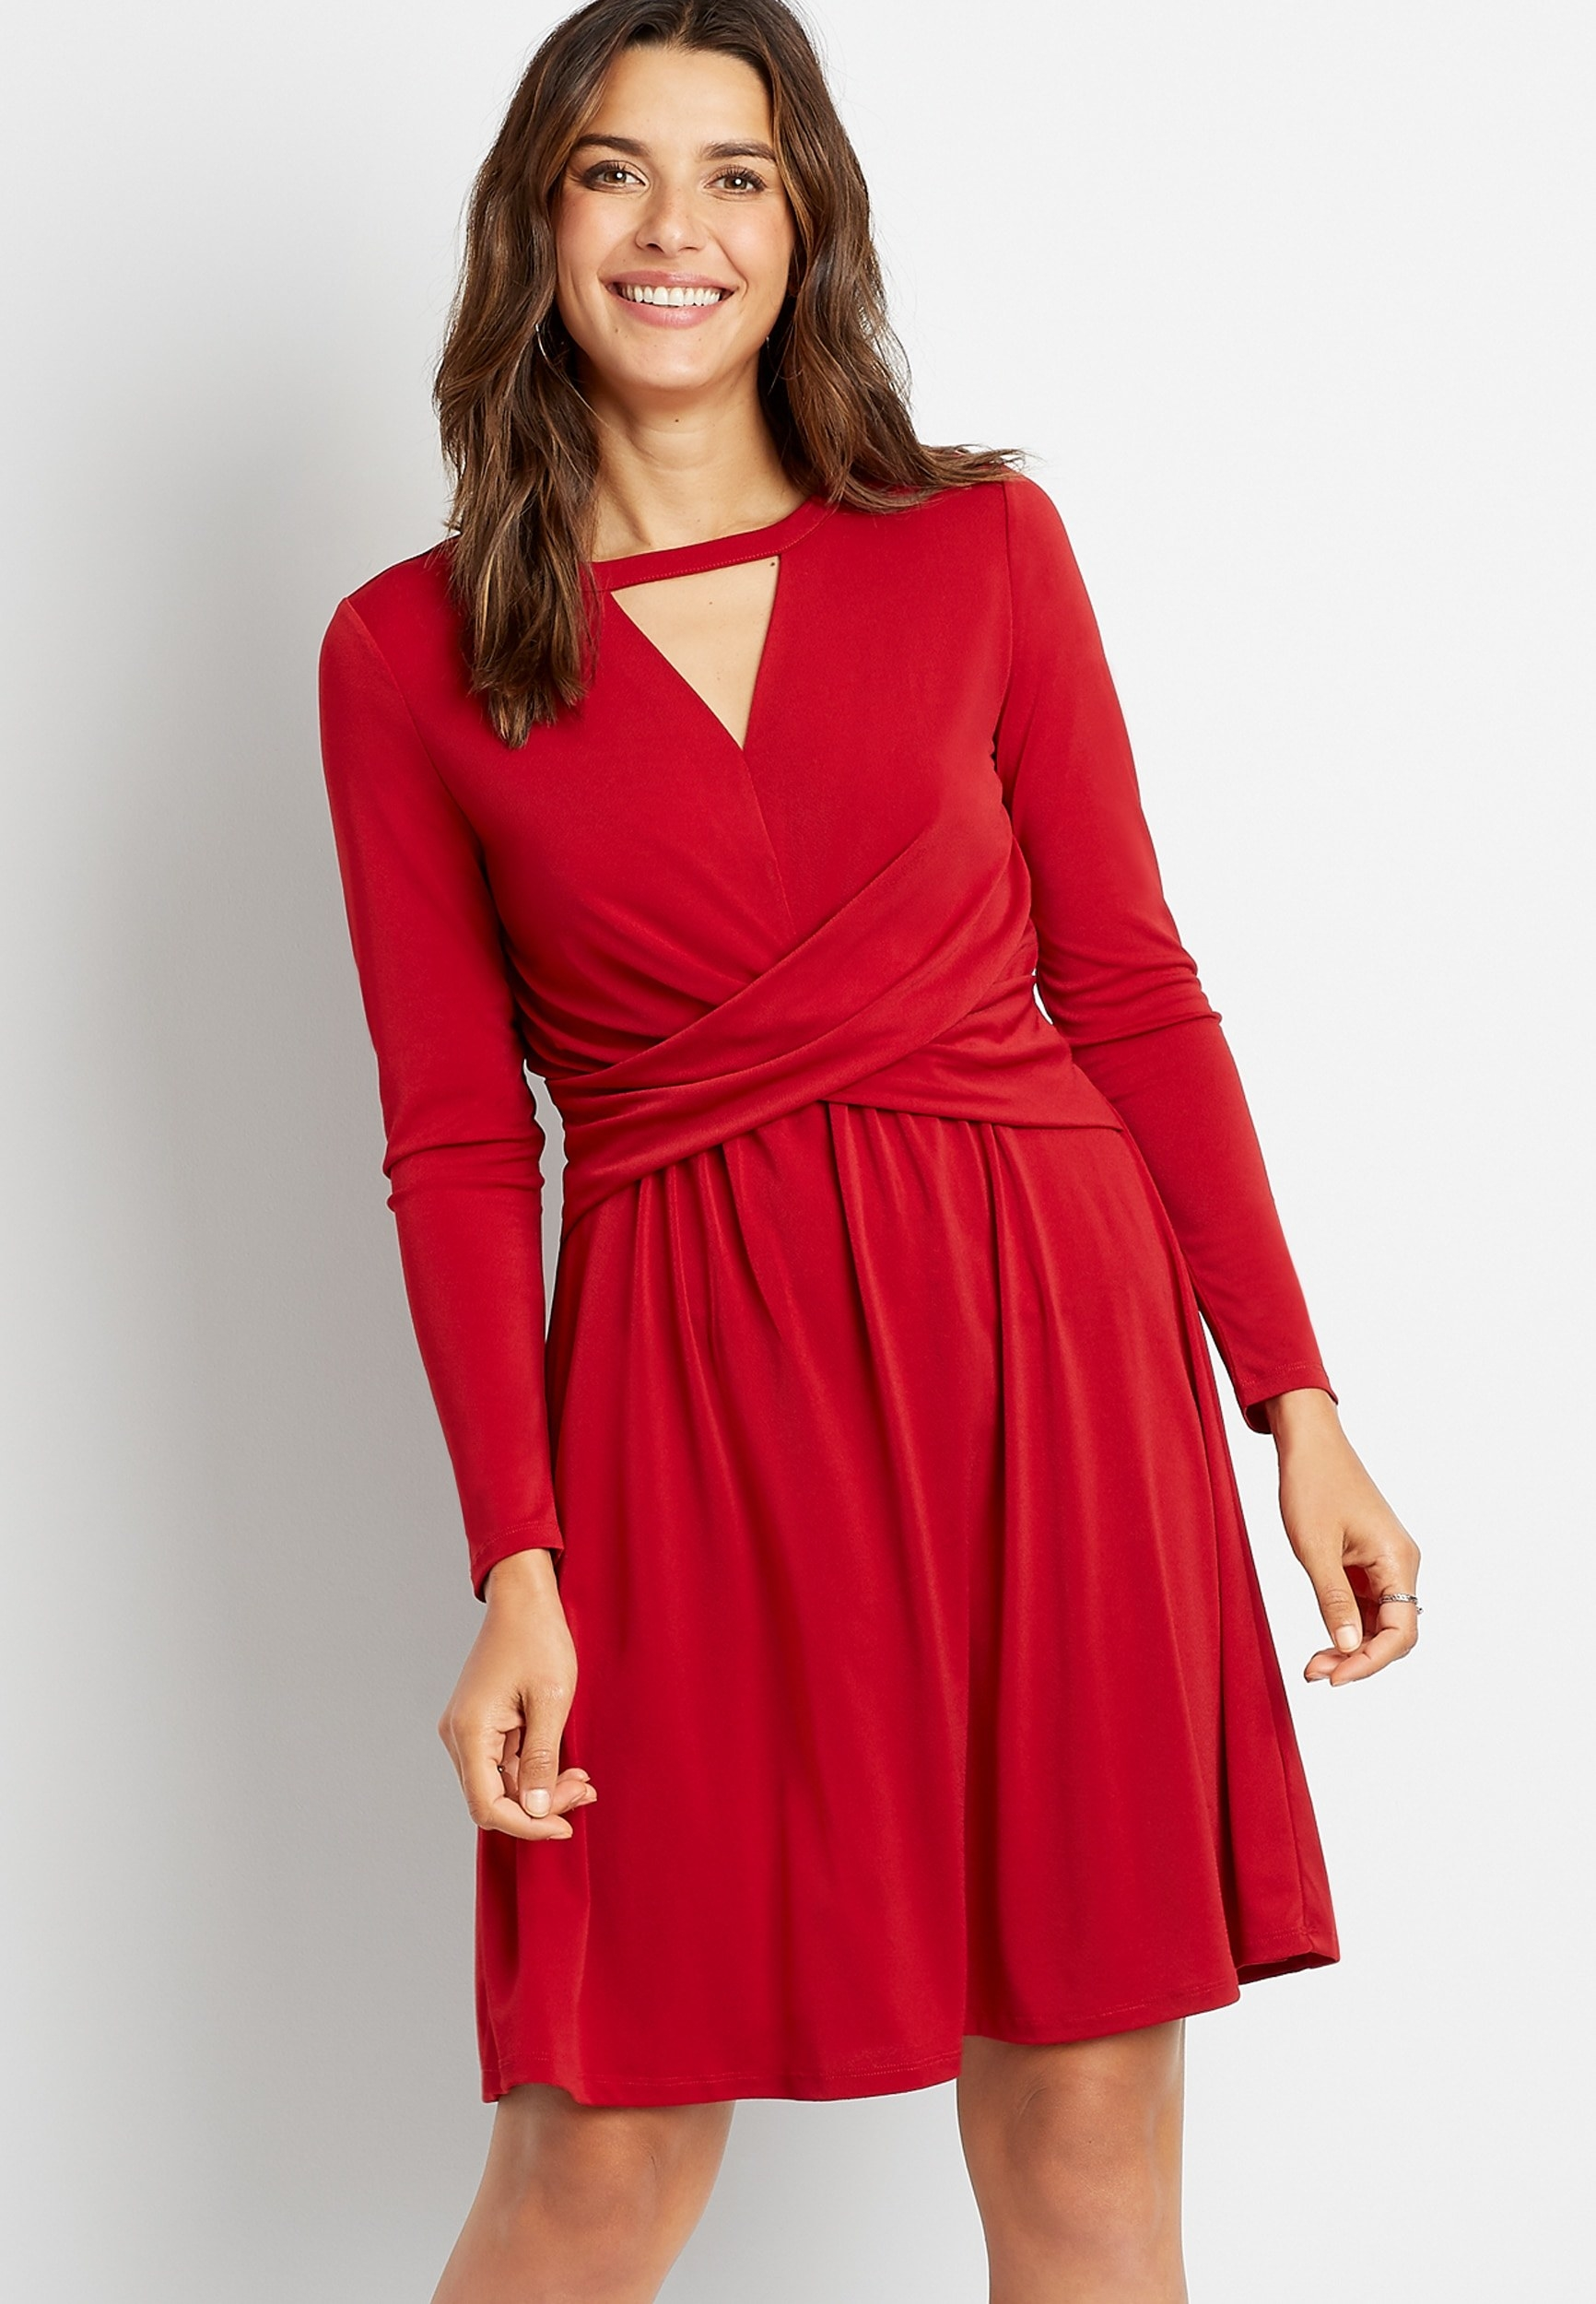 A model wearing the long-sleeve red dress with a triangular cutout at the neck and twist detail at the waist